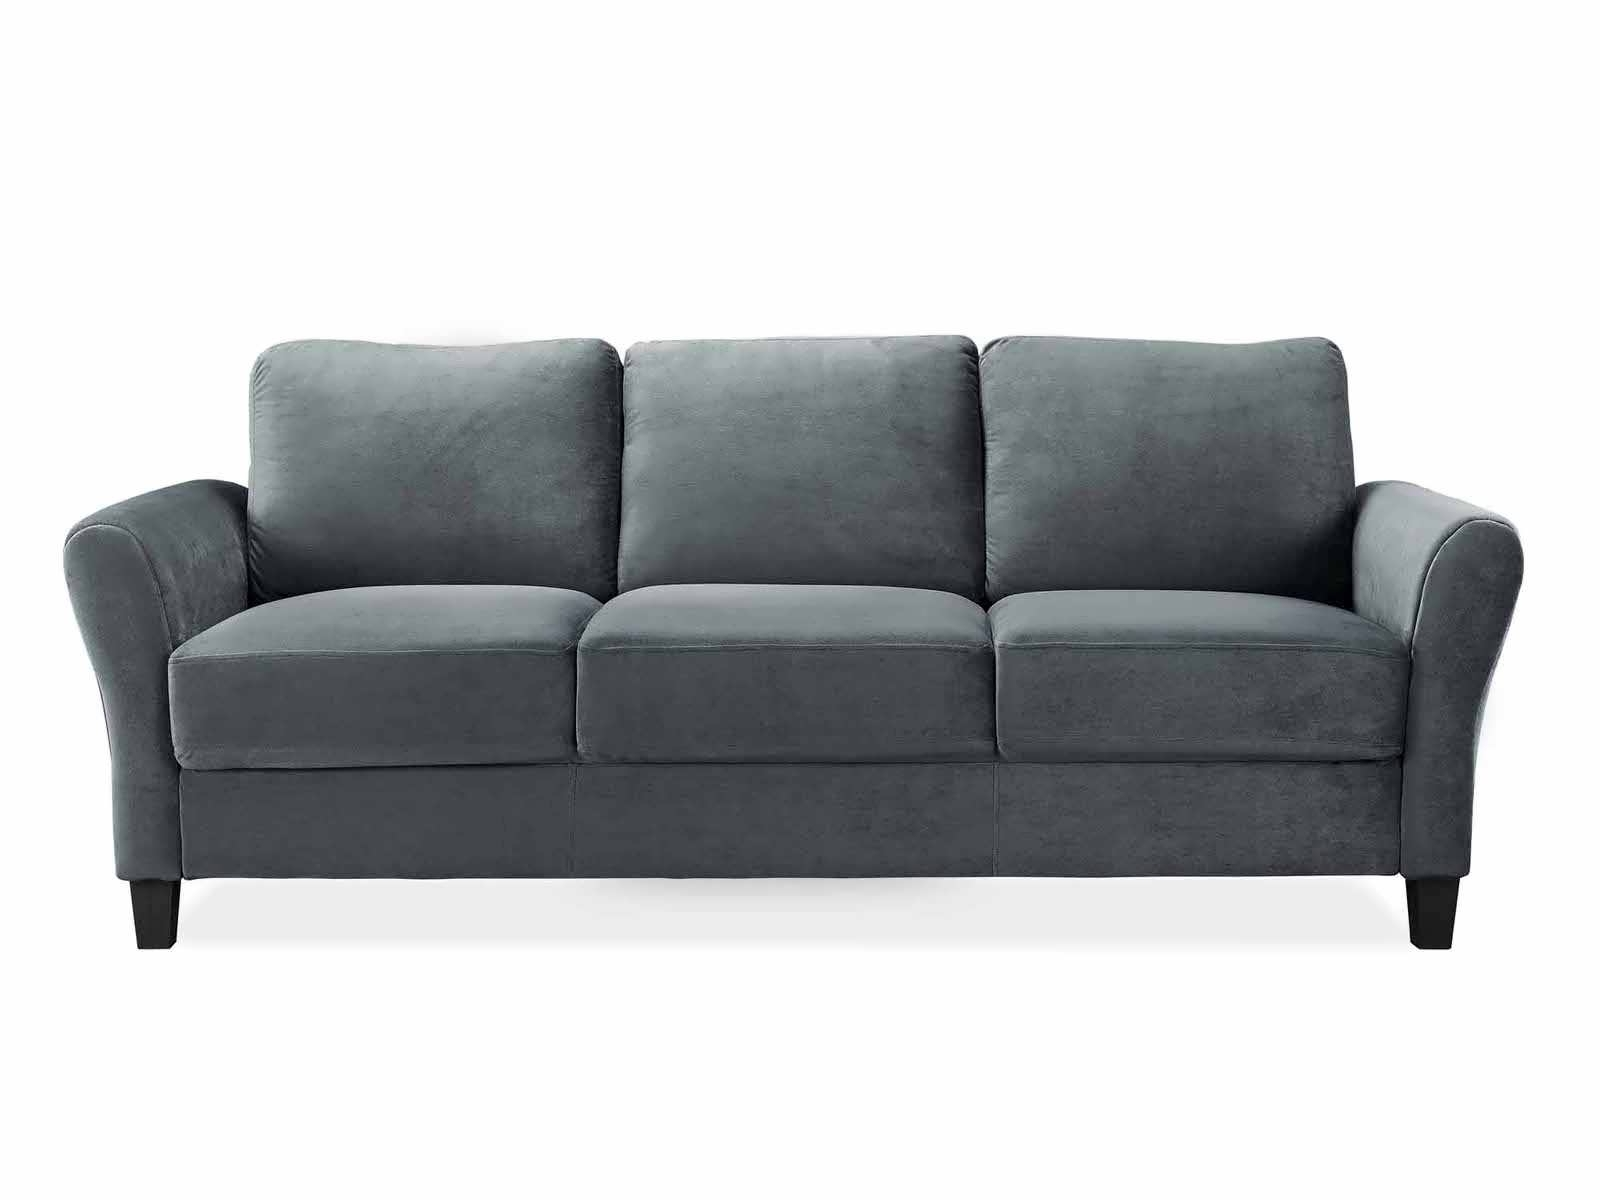 Unusual Sofa With Regard To Popular Uncategorized : Designer Couches Within Brilliant Furniture (View 19 of 20)